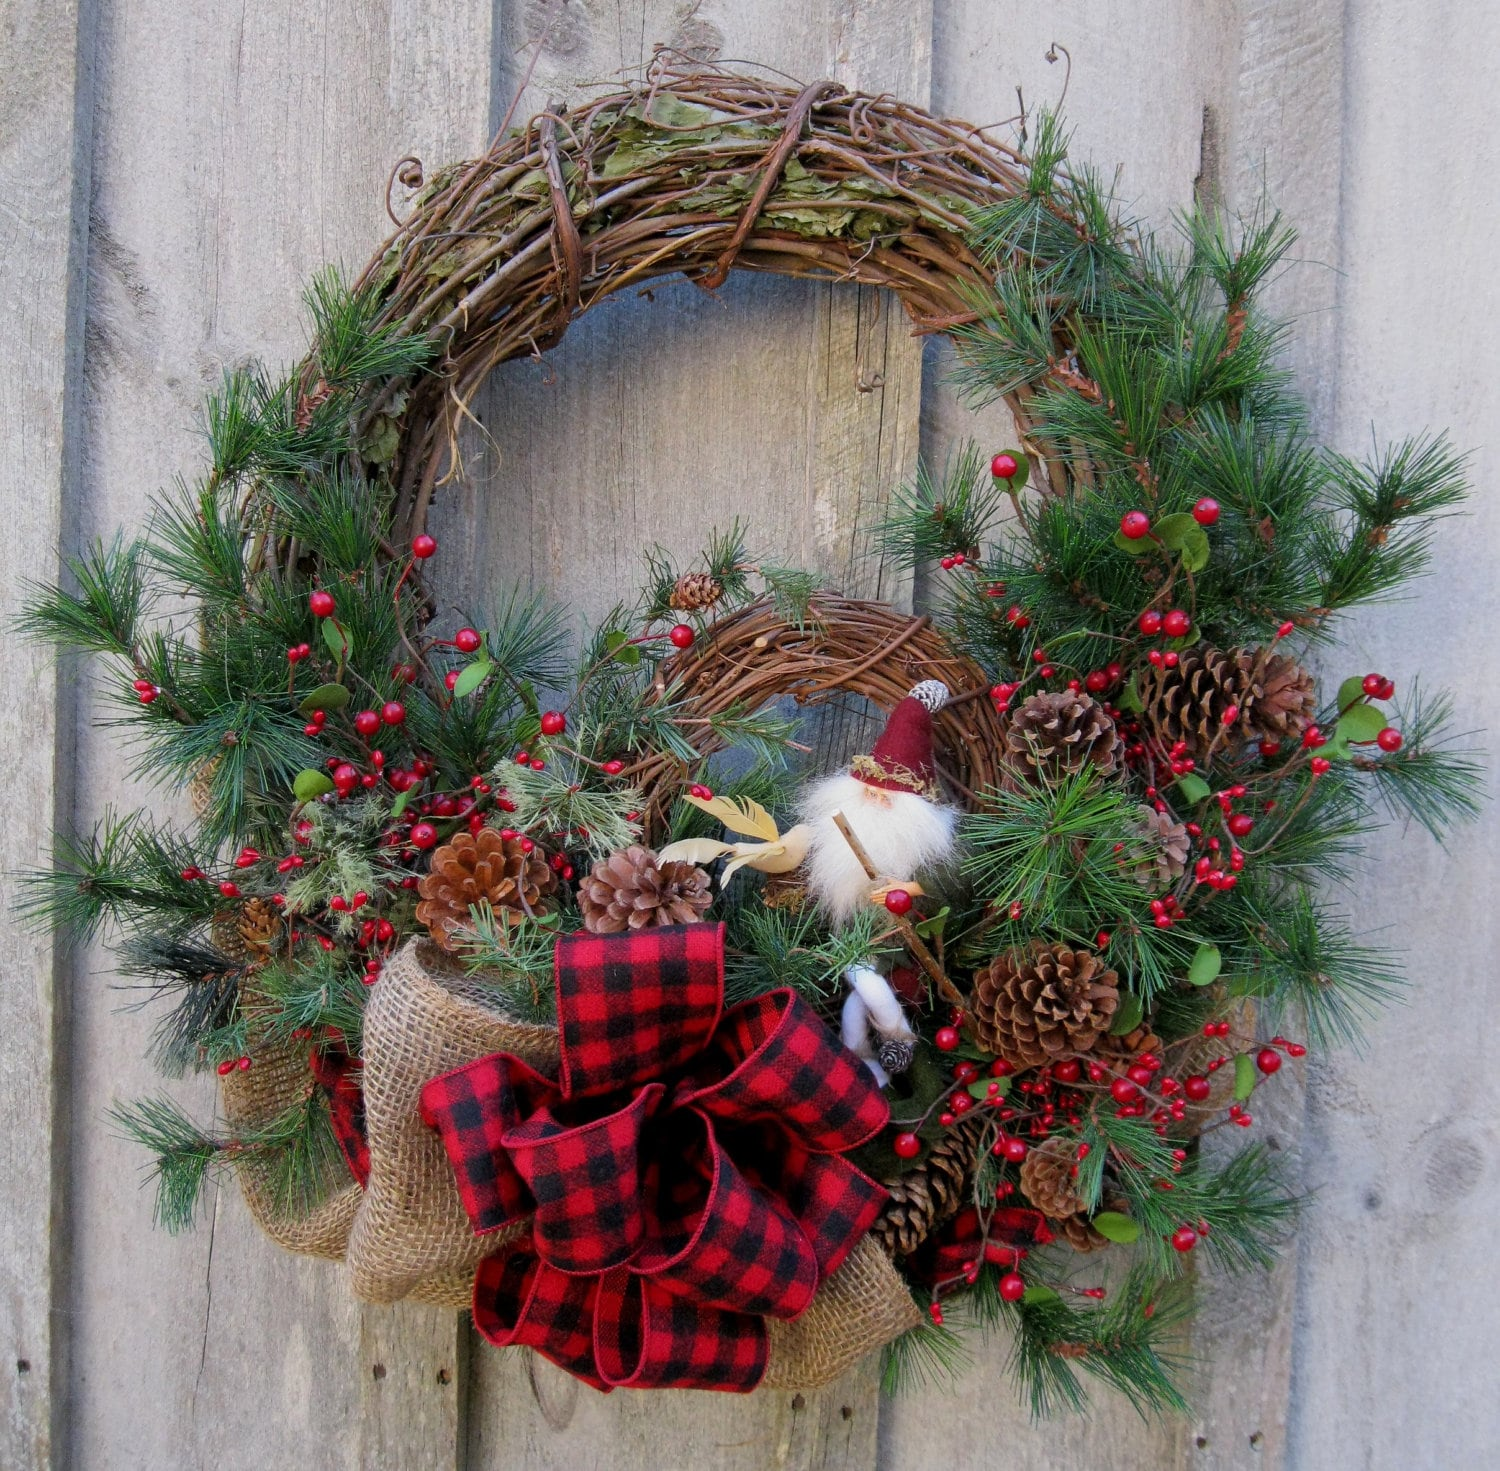 Christmas Wreath Holiday D Cor Woodland Christmas Rustic: christmas wreath decorations